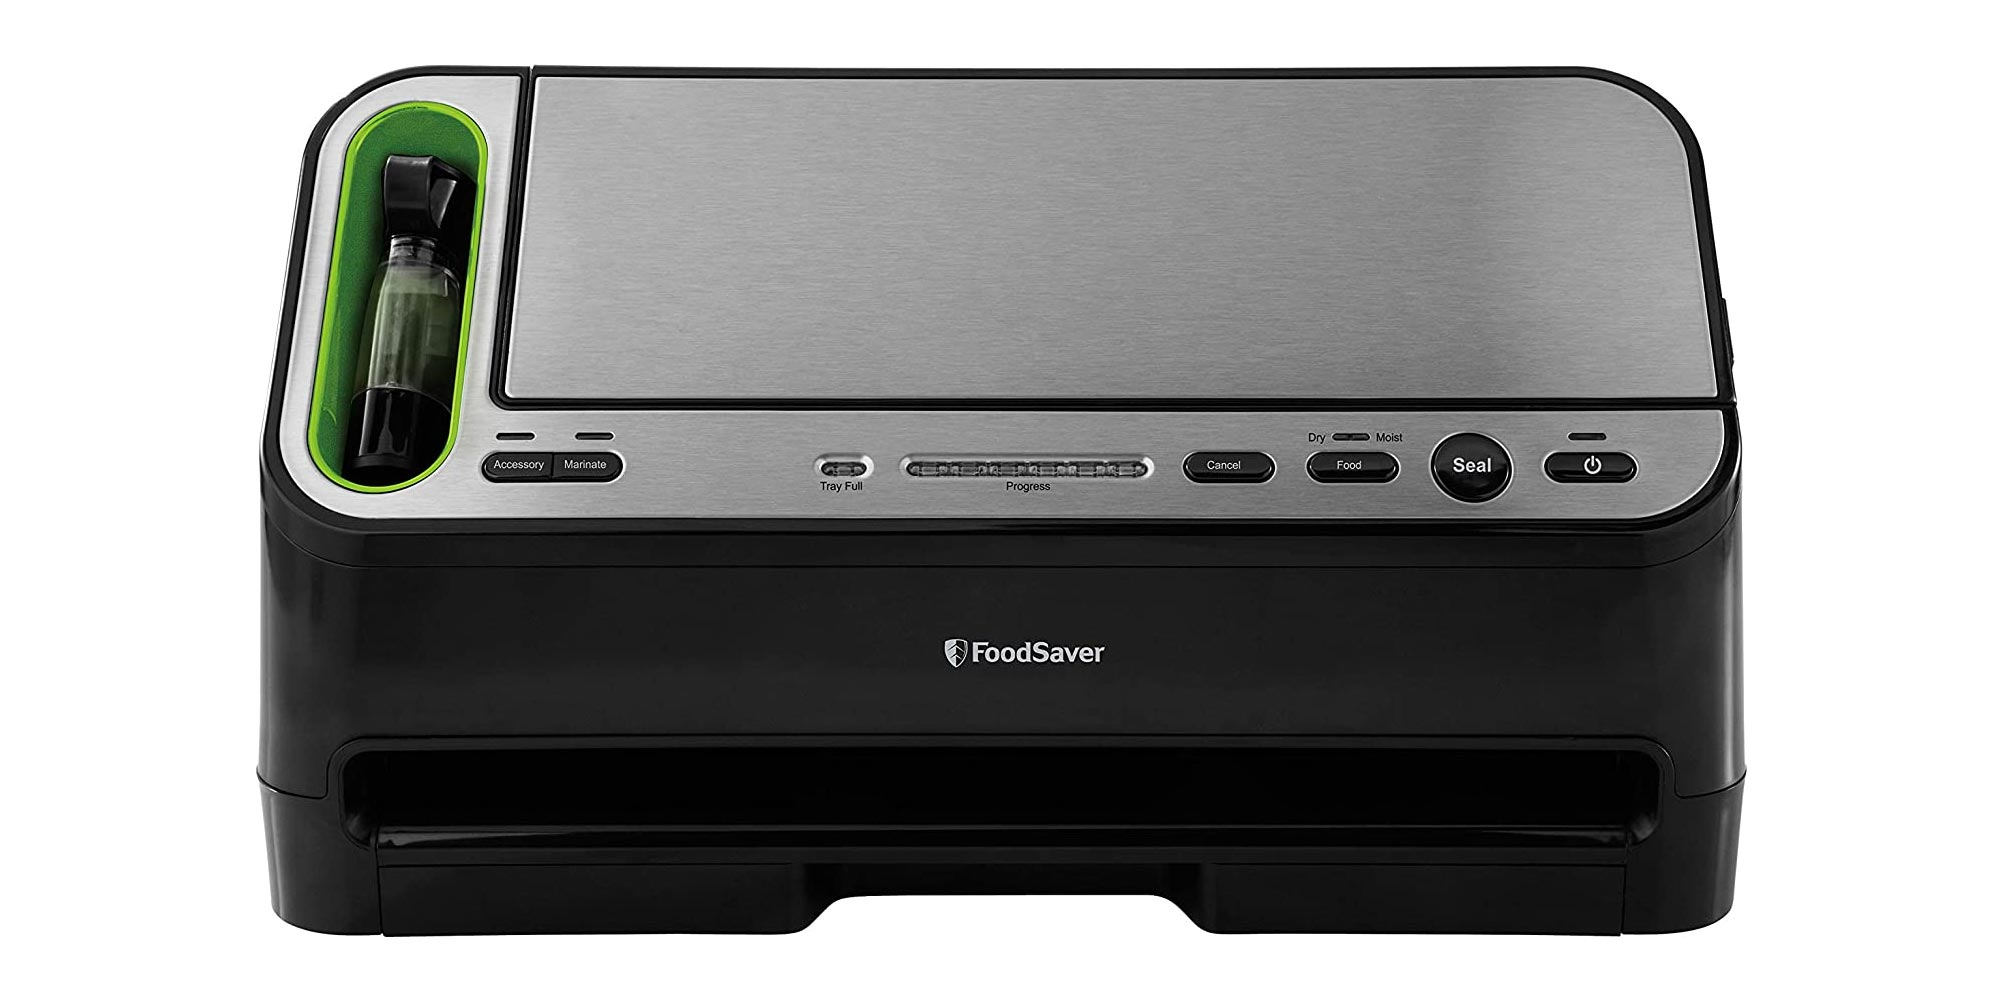 FoodSaver vacuum sealers, Contigo tumblers, and more drop by up to 35% this Thanksgiving